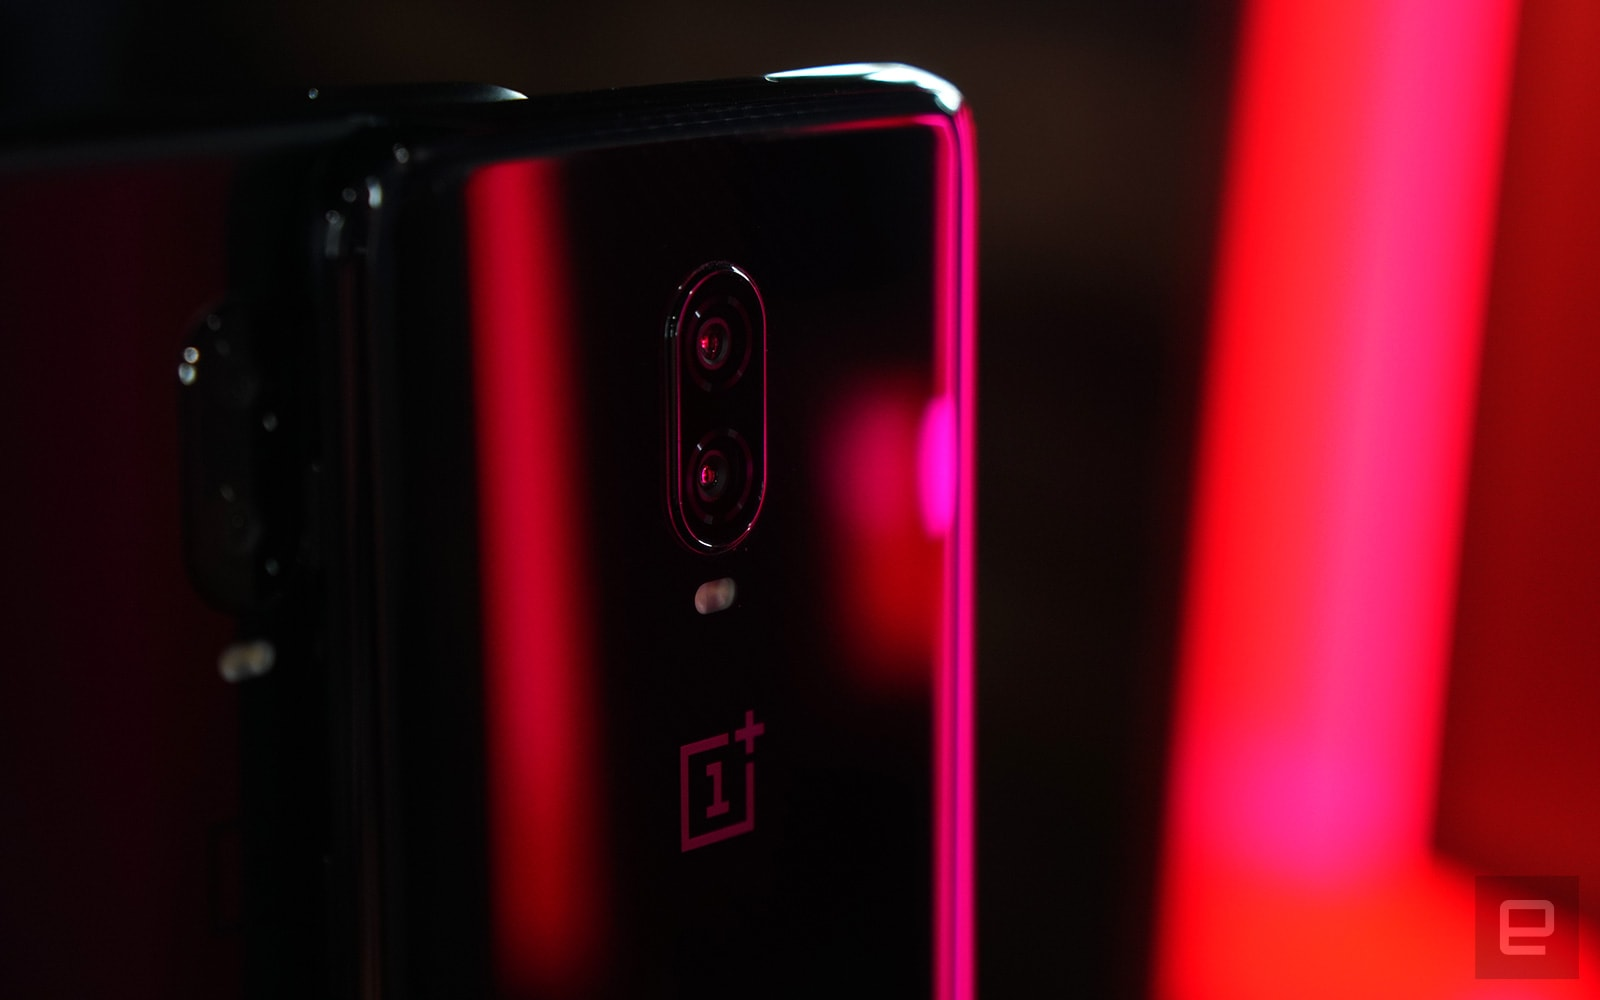 OnePlus 6T review: Trivial changes hamper a great phone